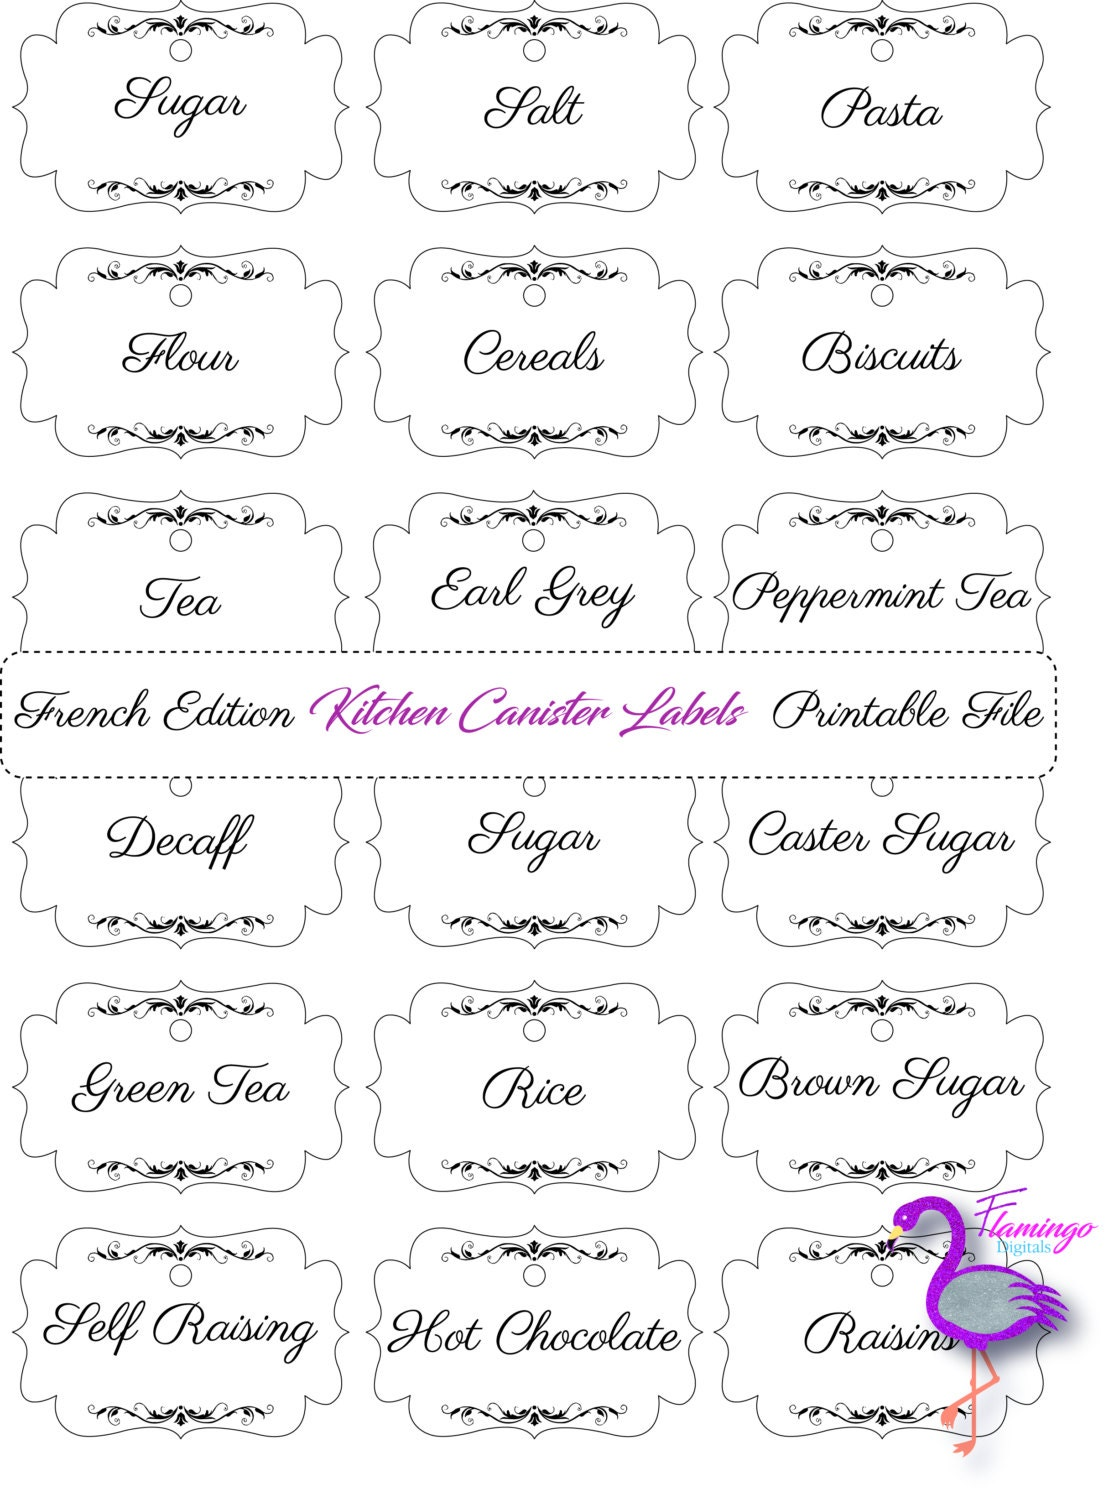 French Kitchen Labels French Style Printable Kitchen Canister kitchen storage kitchenware storage labels jars home storage